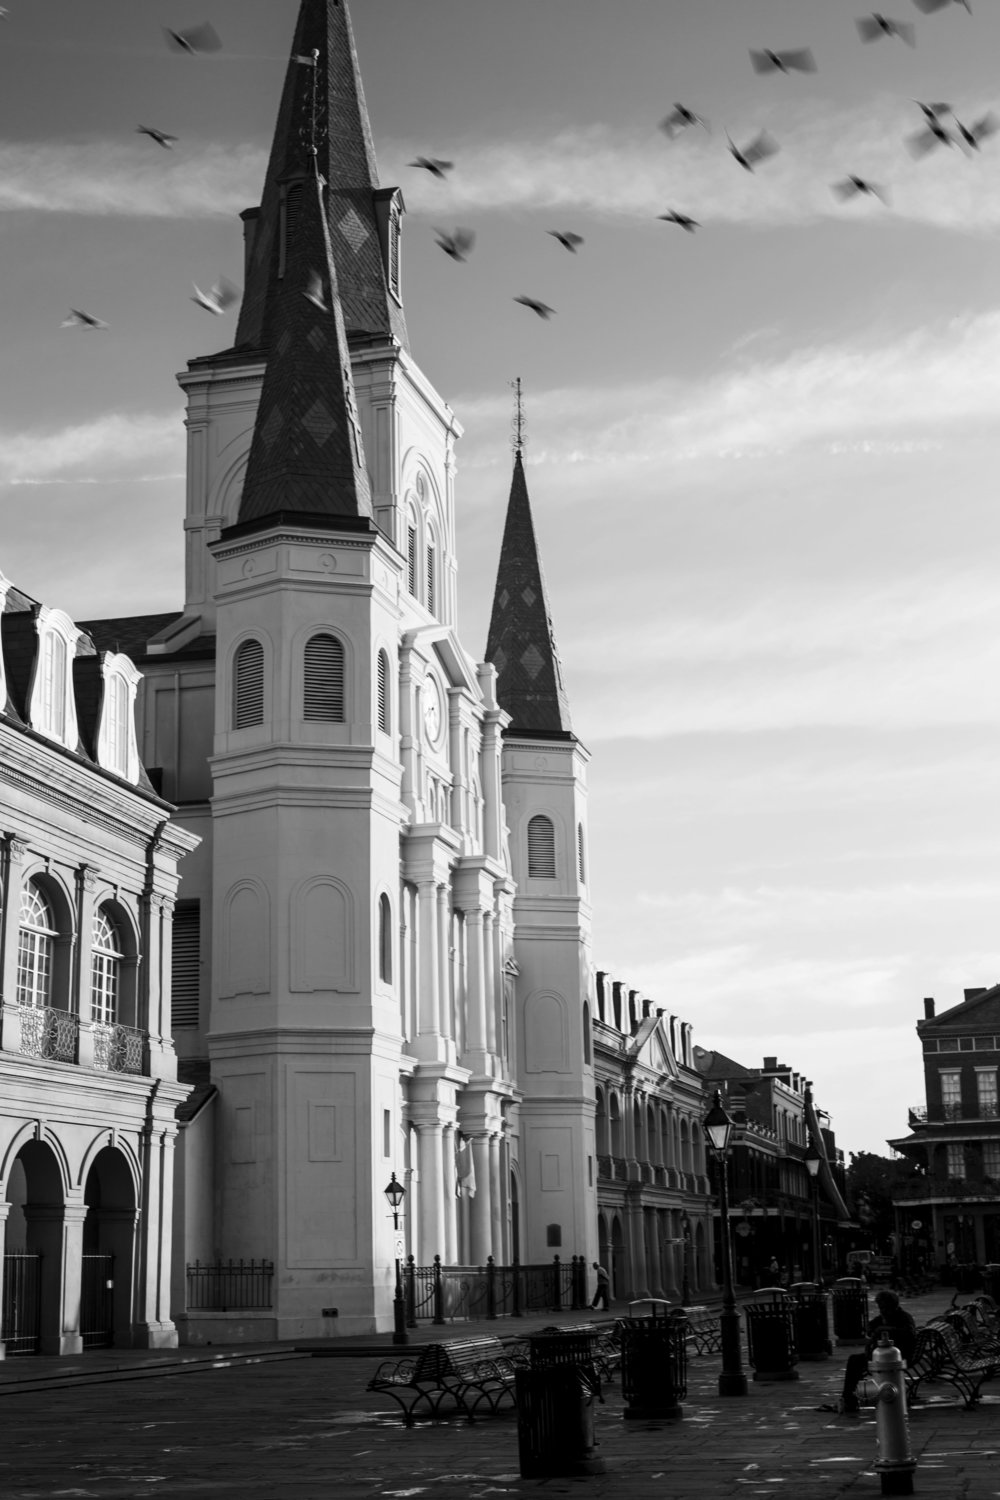 St. Louis cathedral basks in morning's light.